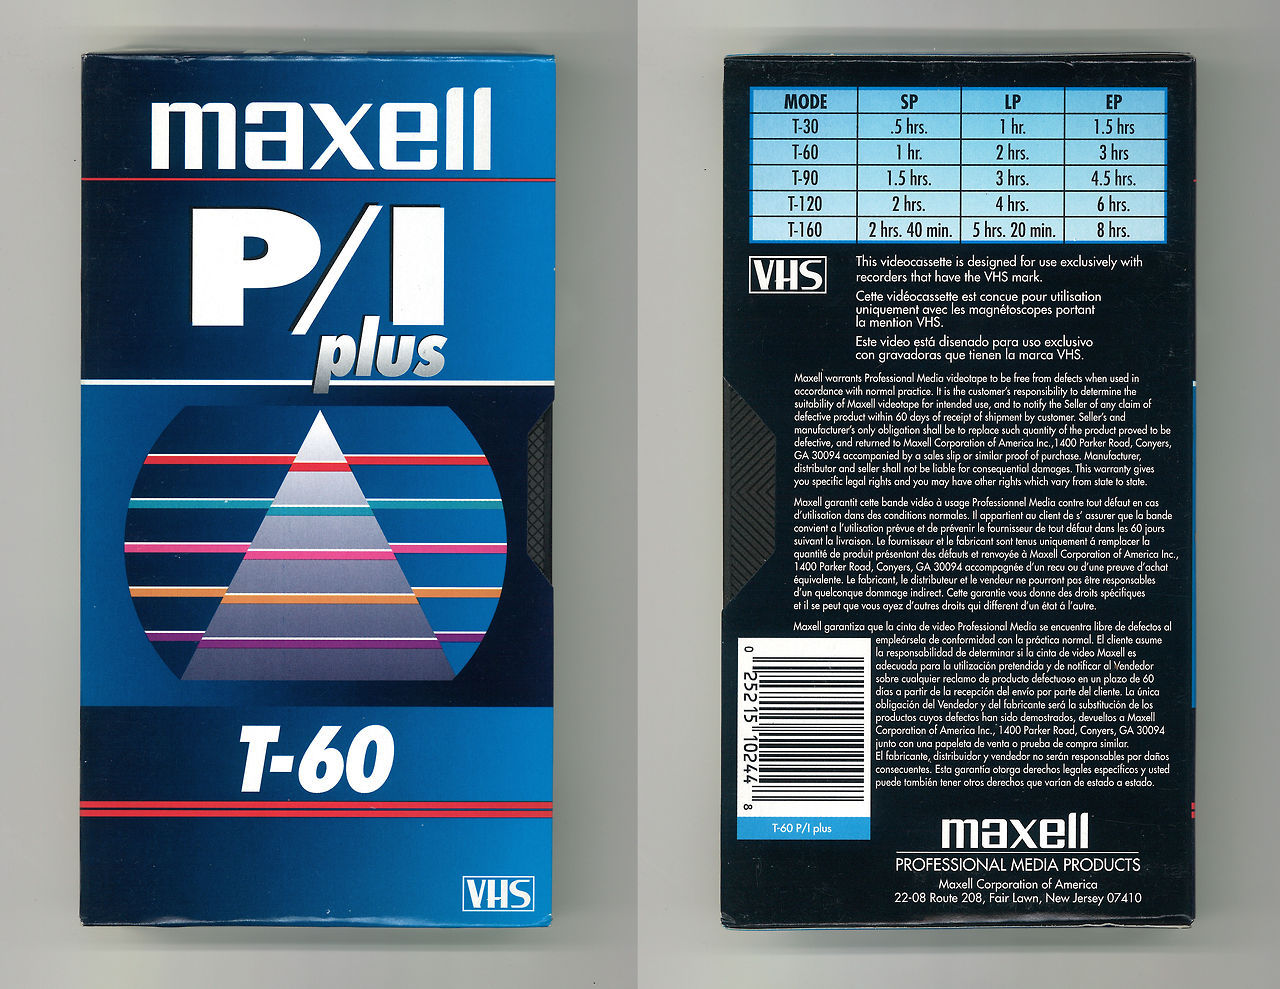 Blank Vhs Cassette Packaging Design Trends  A Lost Art